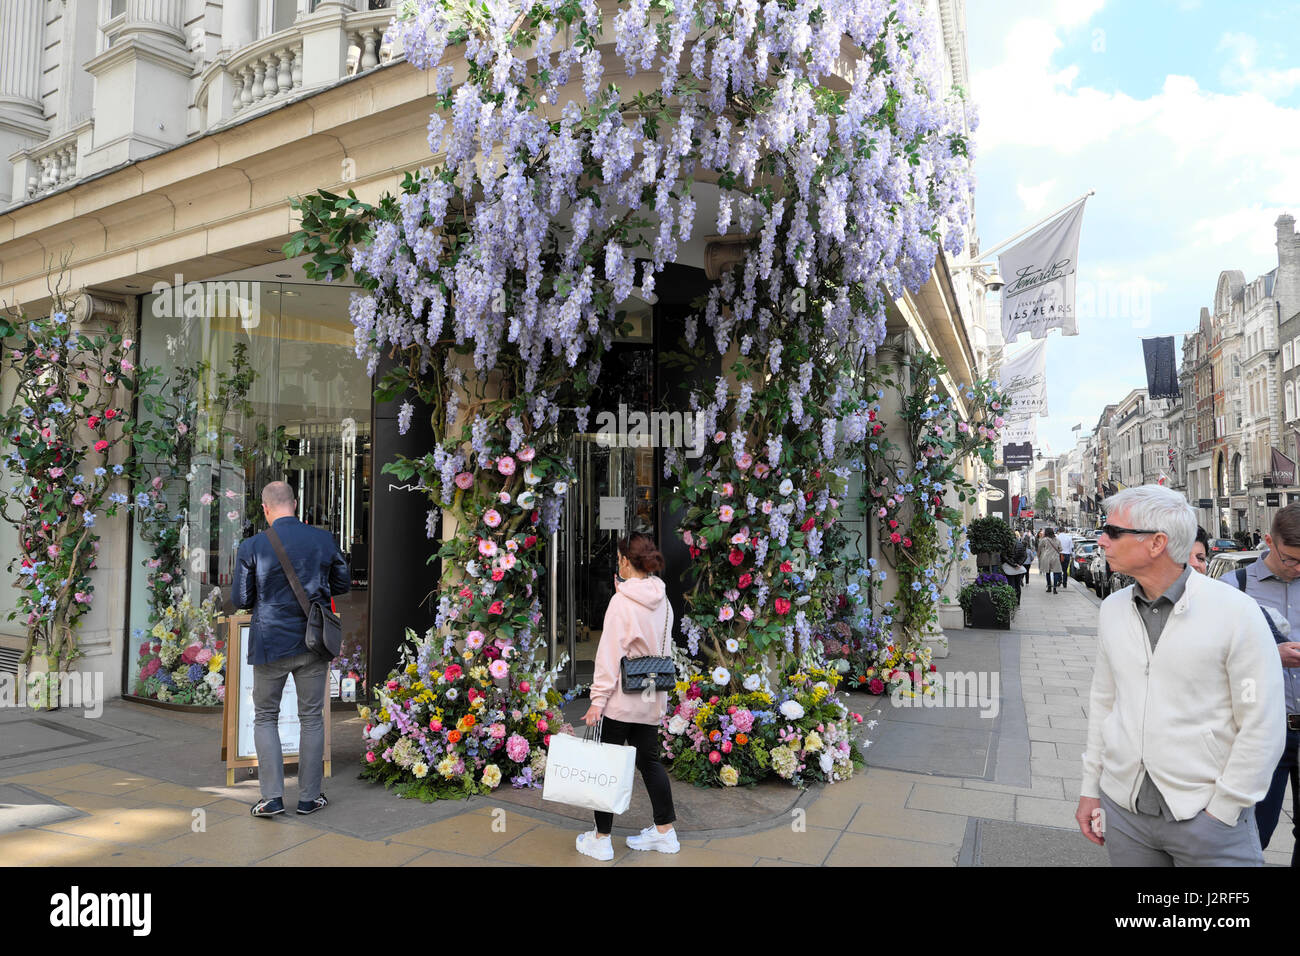 Shop Display Of Artificial Flowers Stock Photos Shop Display Of